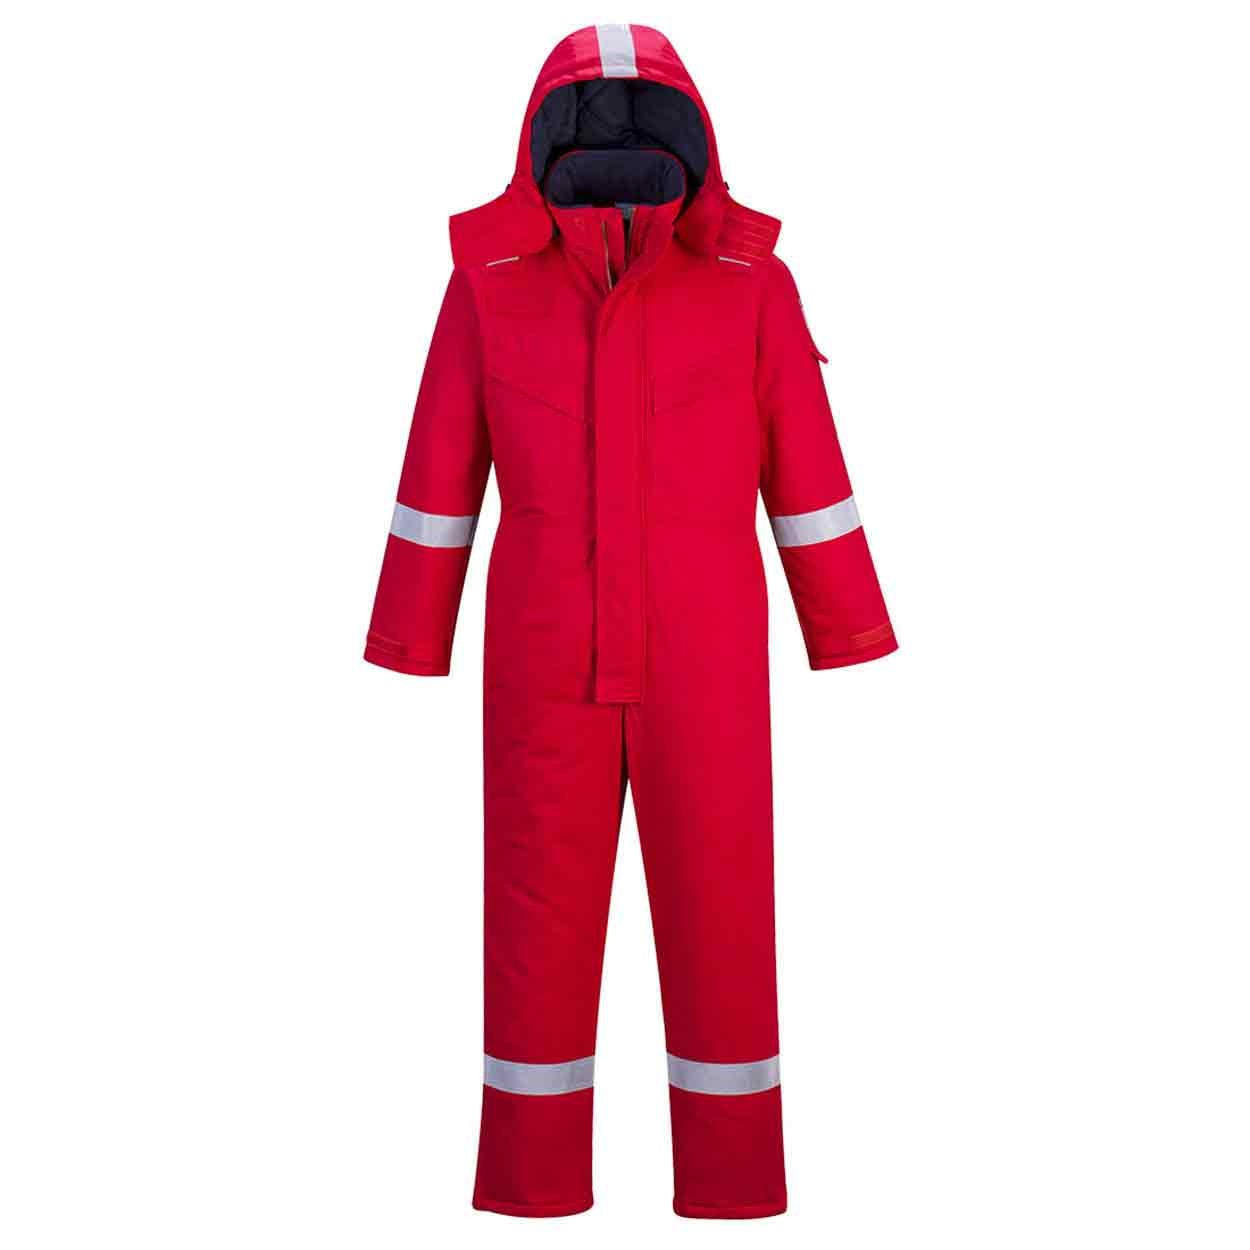 122a52349203 Portwest FR53 FR Anti-Static Winter Coverall - Boilersuits ...